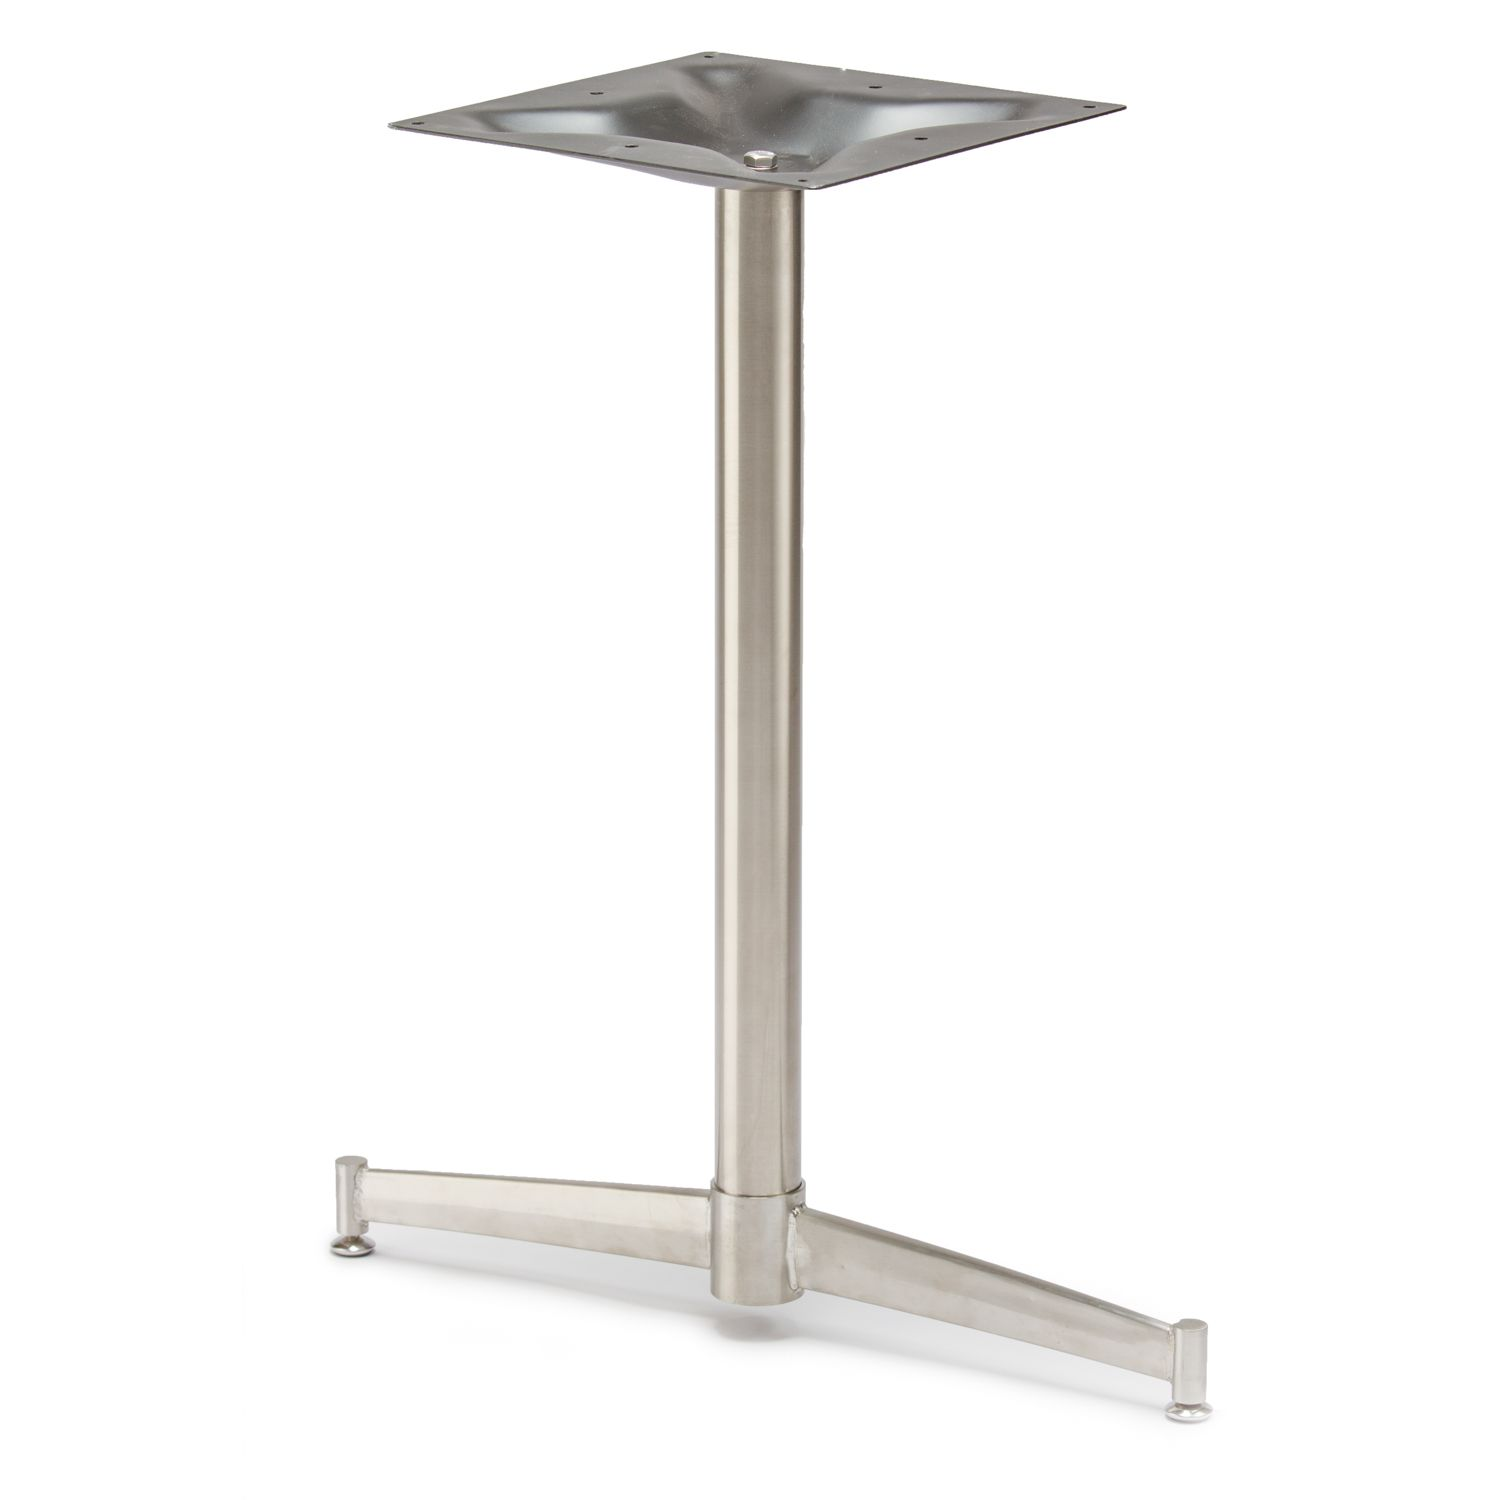 Turin-22T Stainless Steel Table Base